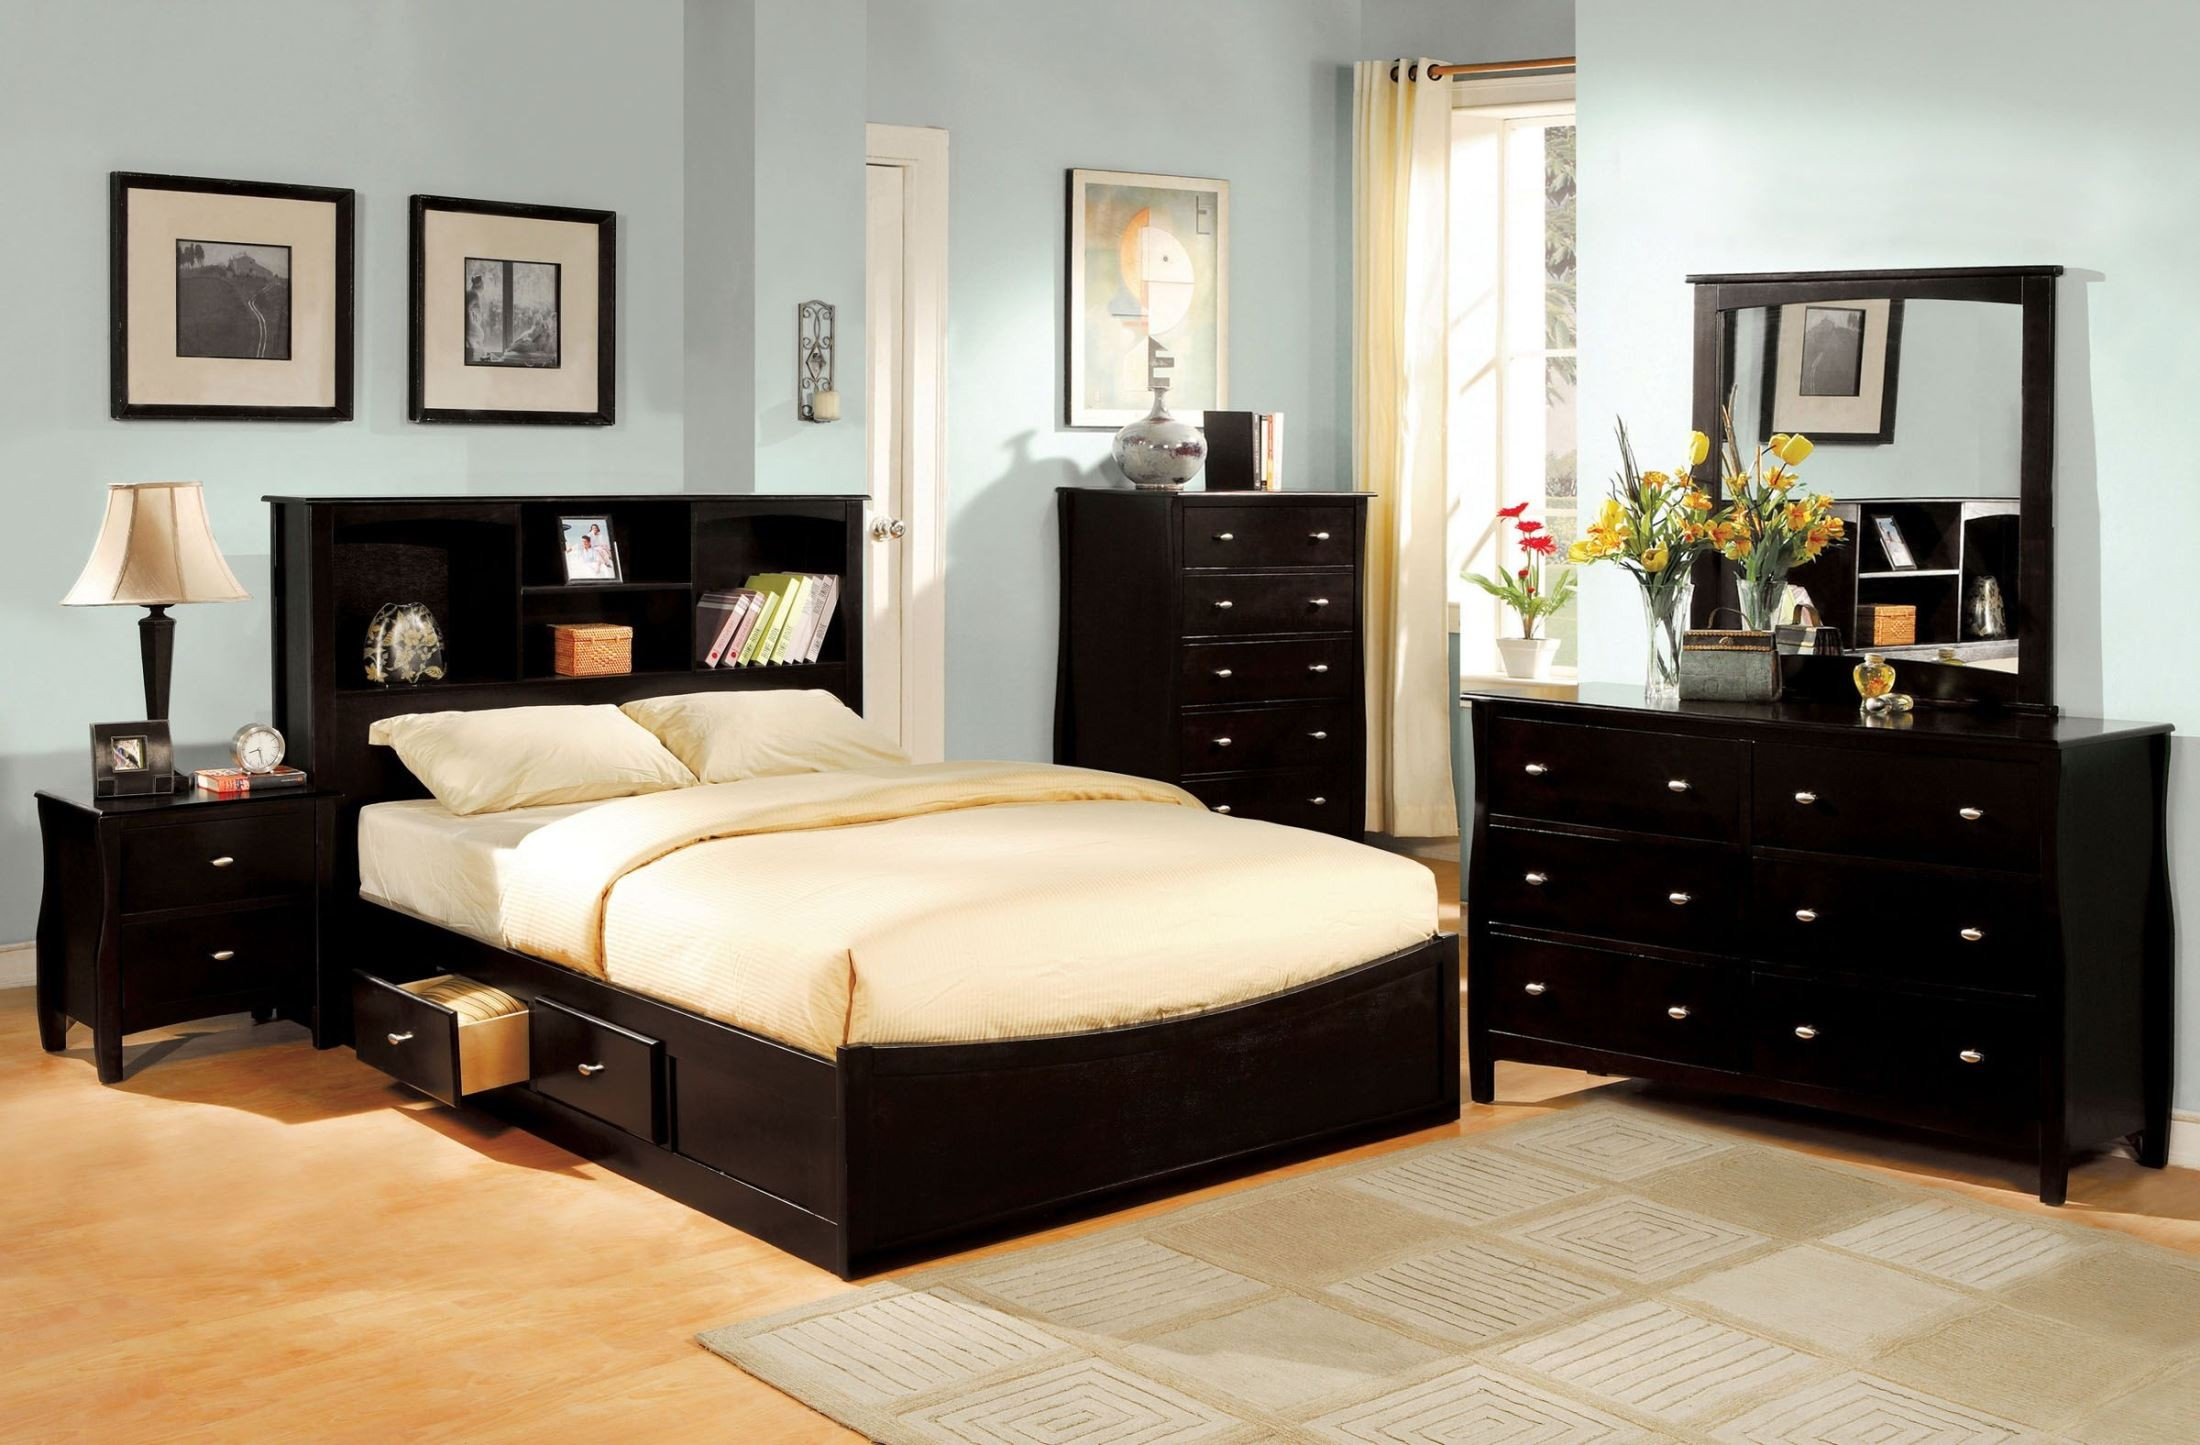 Brooklyn Espresso Youth Platform Bookcase Bedroom Set From Furniture Of America Cm7053f Bed